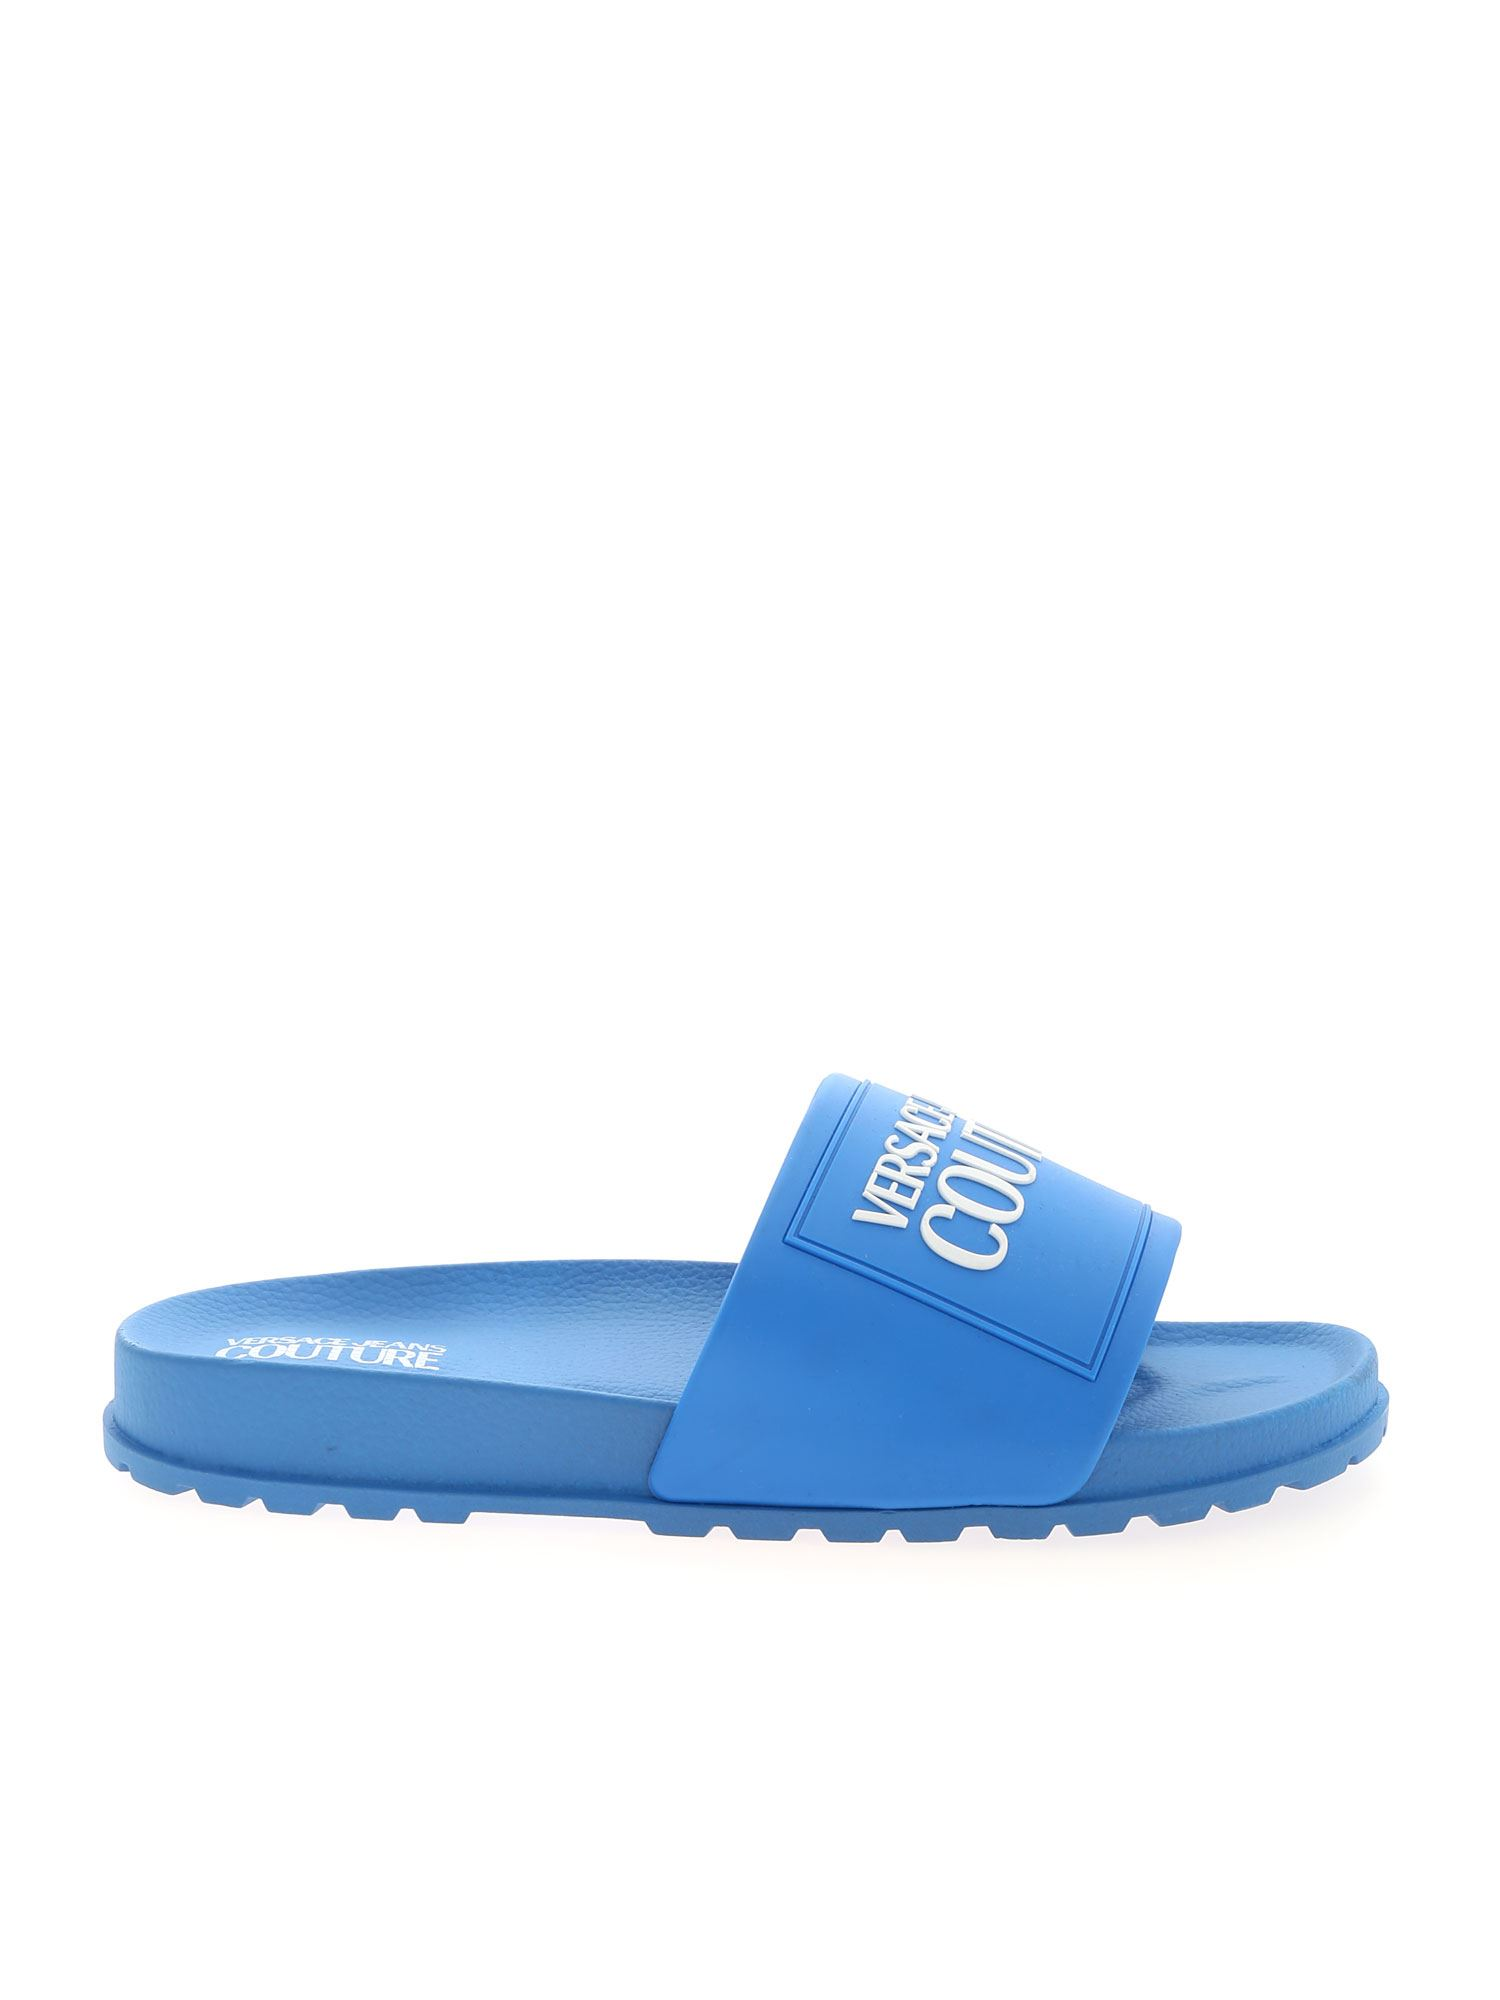 Versace Jeans Couture LETTERING LOGO SLIPPERS IN BLUE